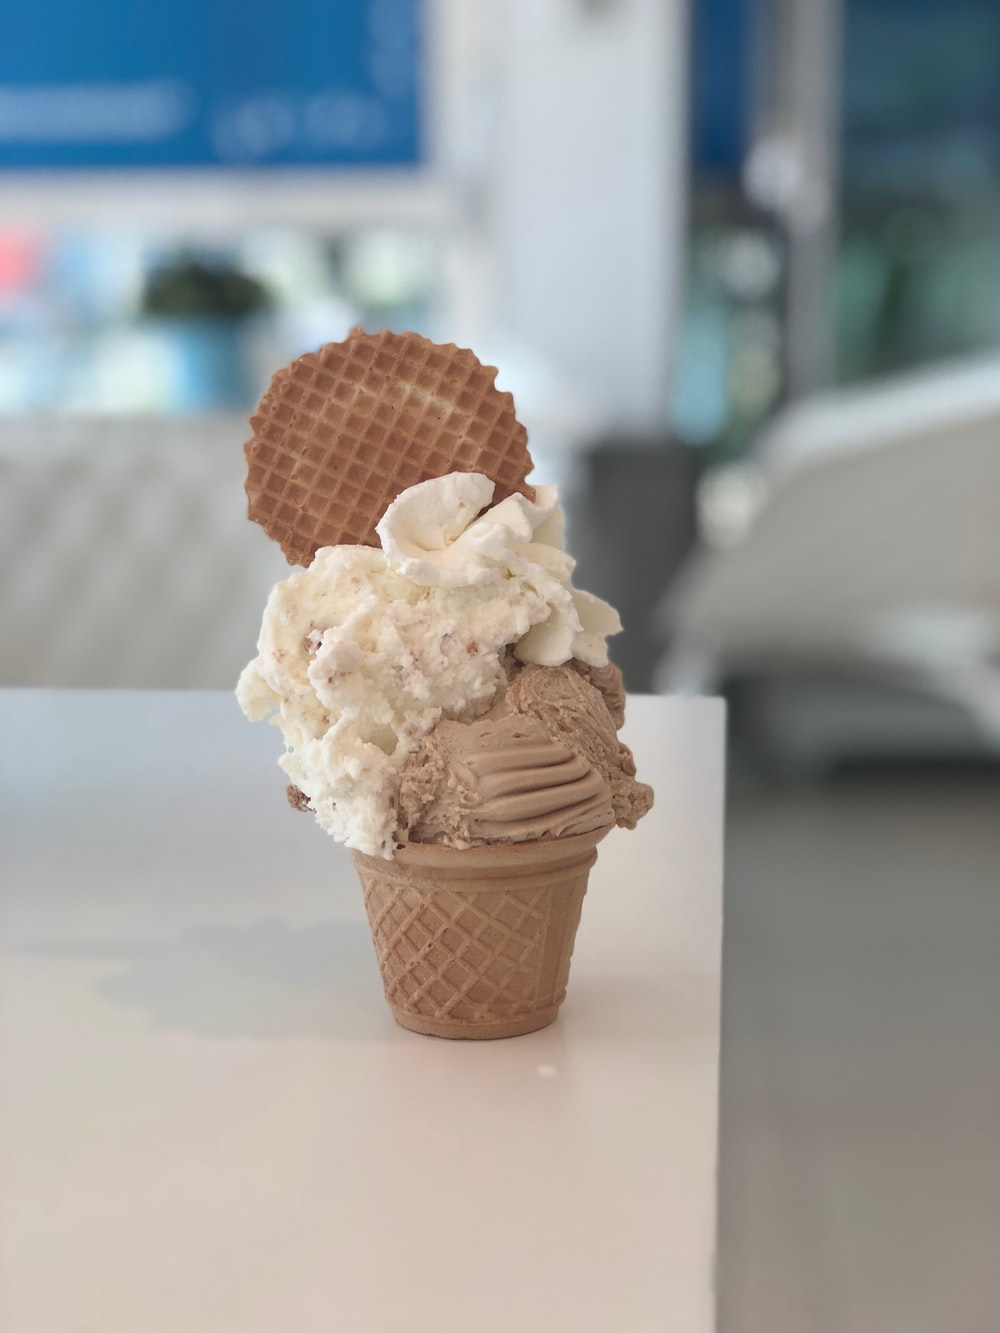 white and brown ice cream close-up photography